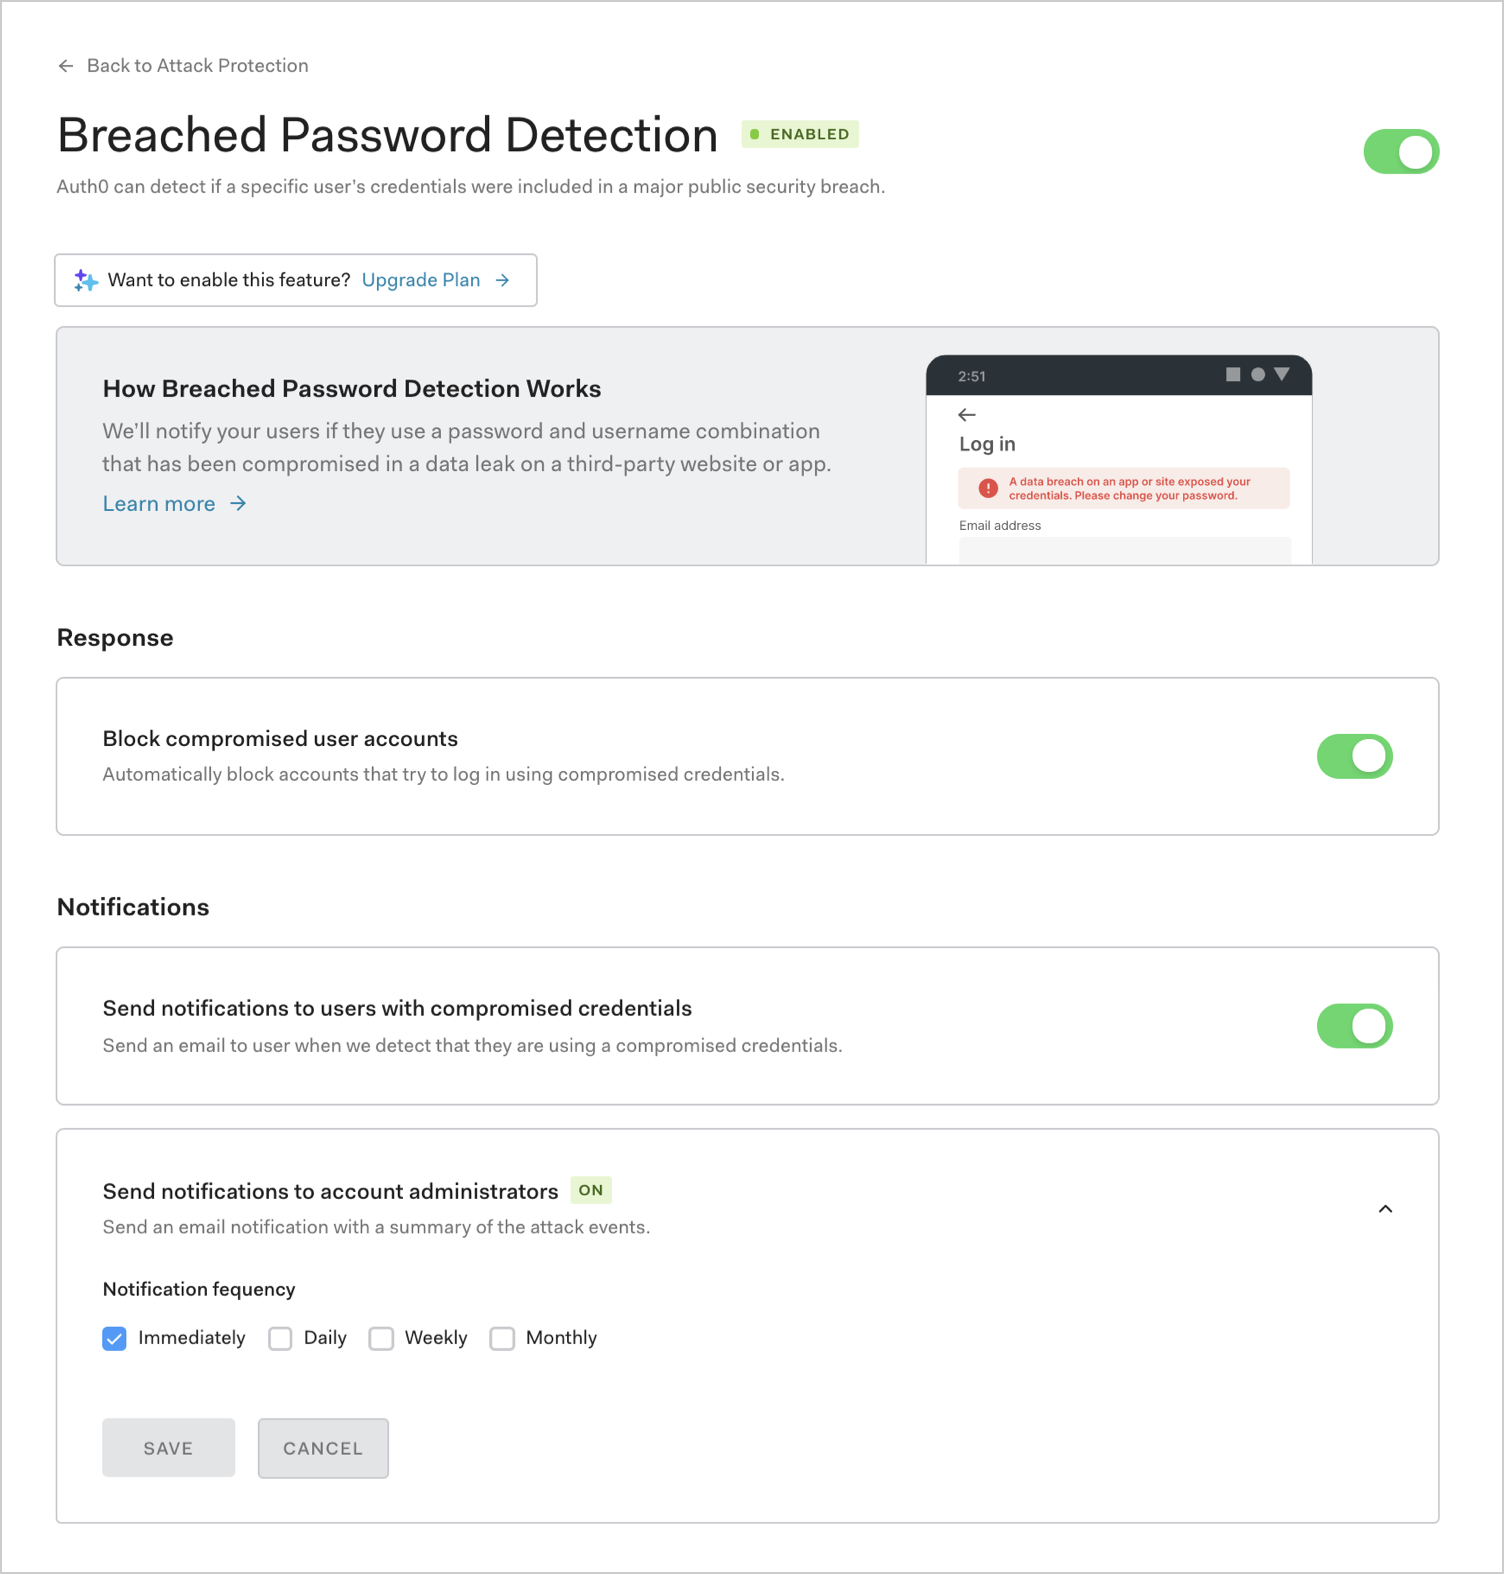 Dashboard Attack Protection Breached Password Detection page